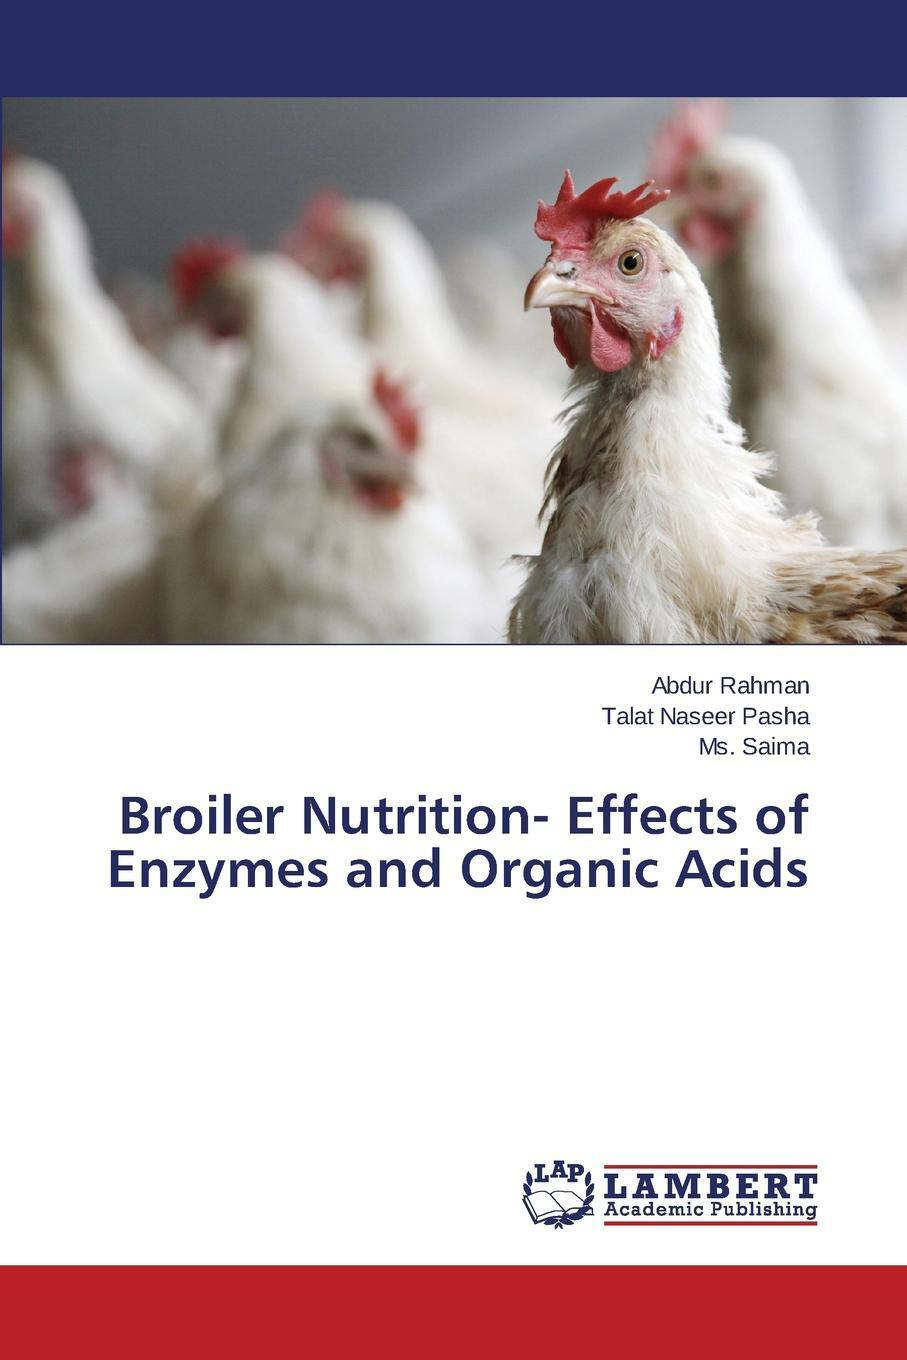 Broiler Nutrition- Effects of Enzymes and Organic Acids